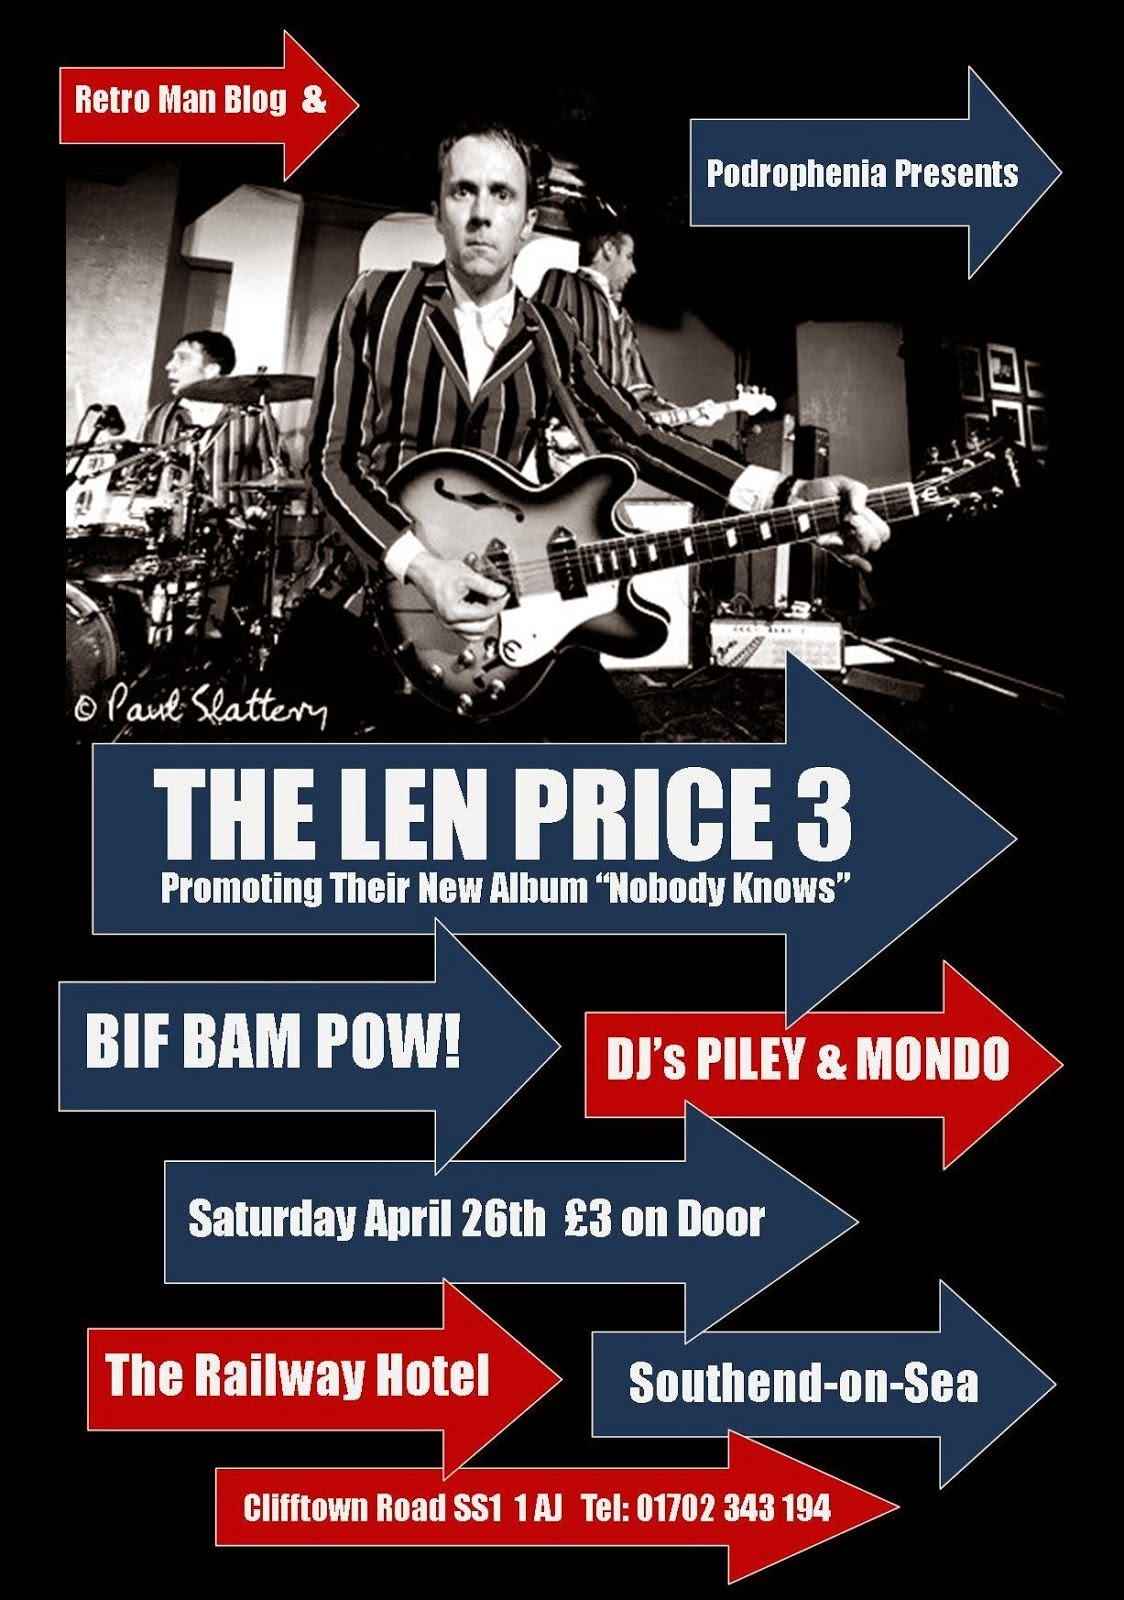 Retro Man Blog Presents: The Len Price 3 + Bif Bam Pow! + Podroprenia DJs April 26th